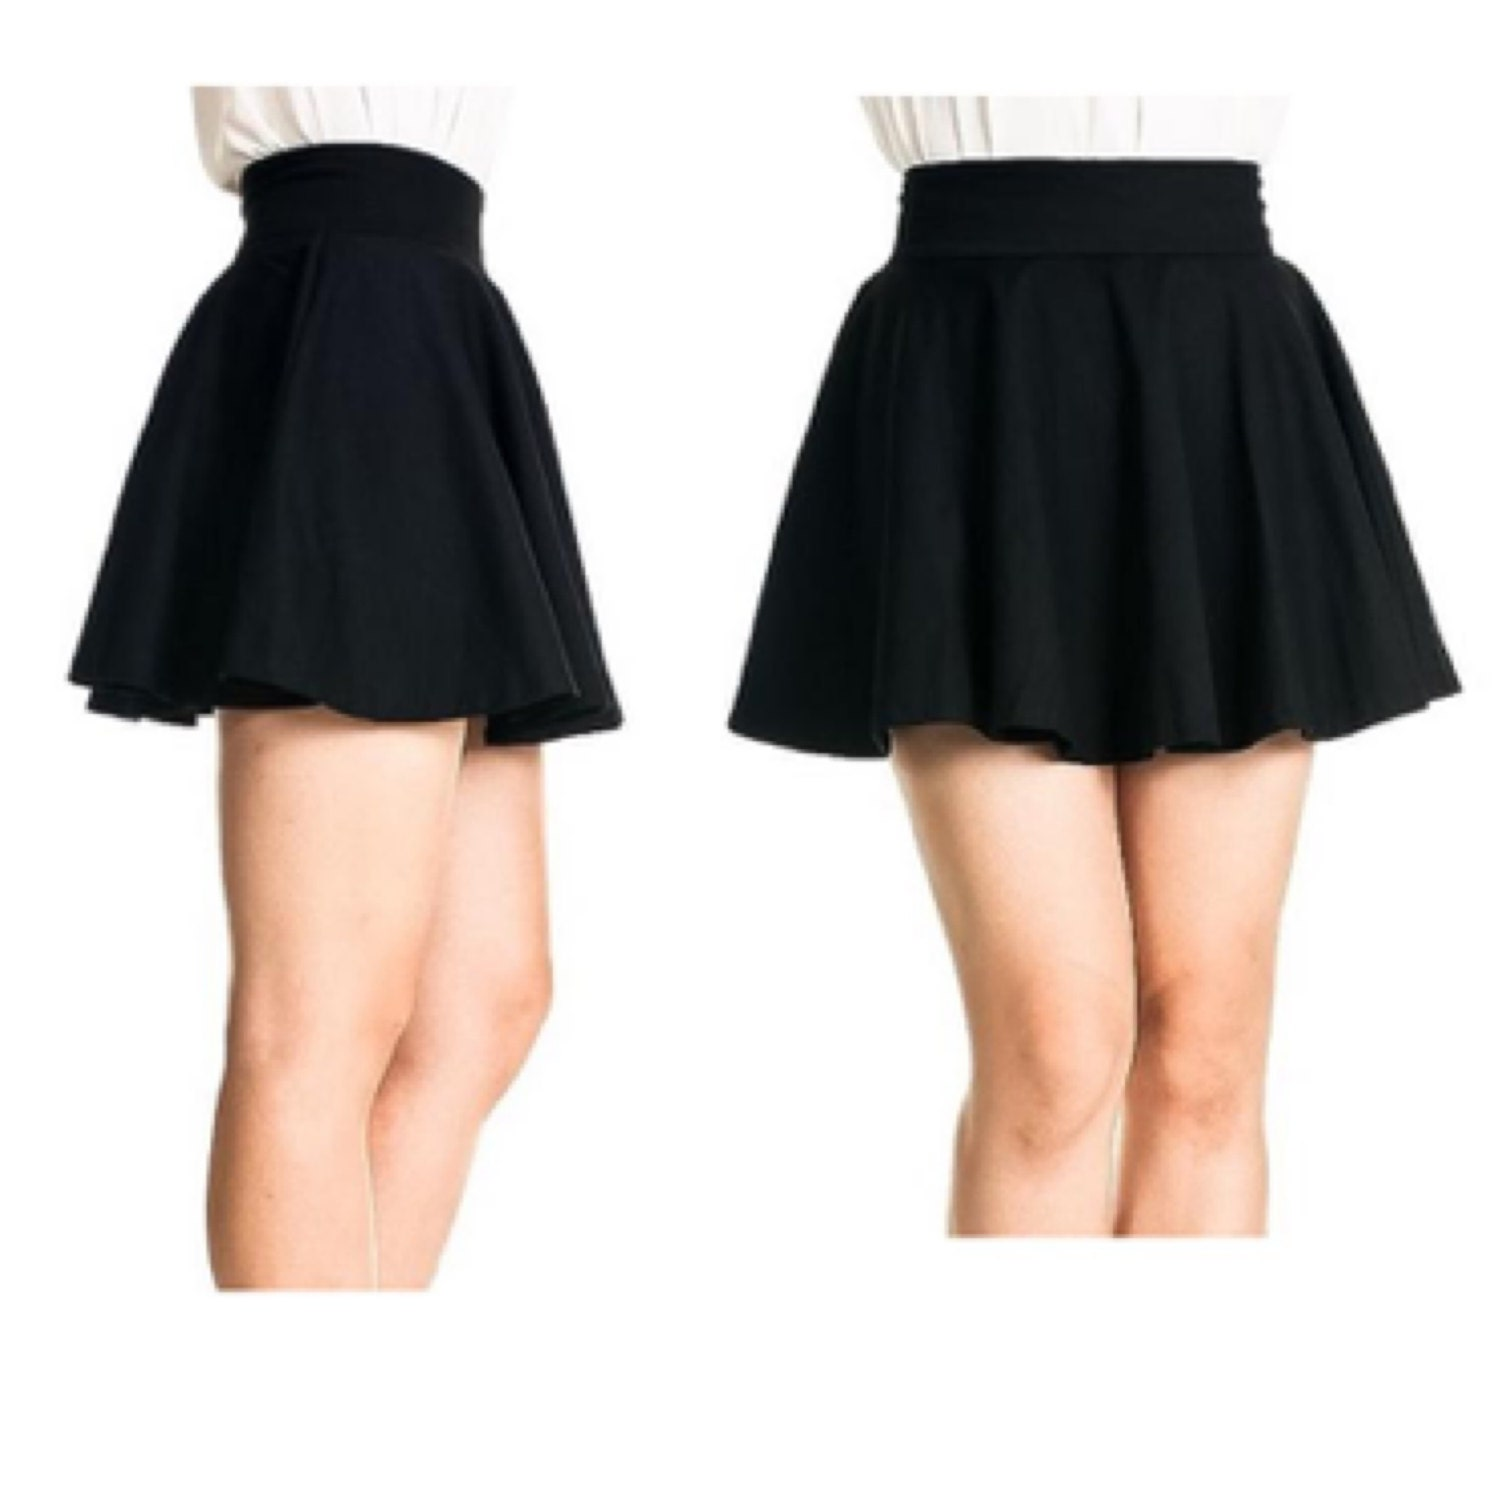 Short skirts make for fun casual outfits, while long skirts can be formal or casual, depending on the material and cut. These skirts come in different shapes, including pencil, A-line, and peplum. Selecting which cut of skirt you want depends on where you're planning to wear it .